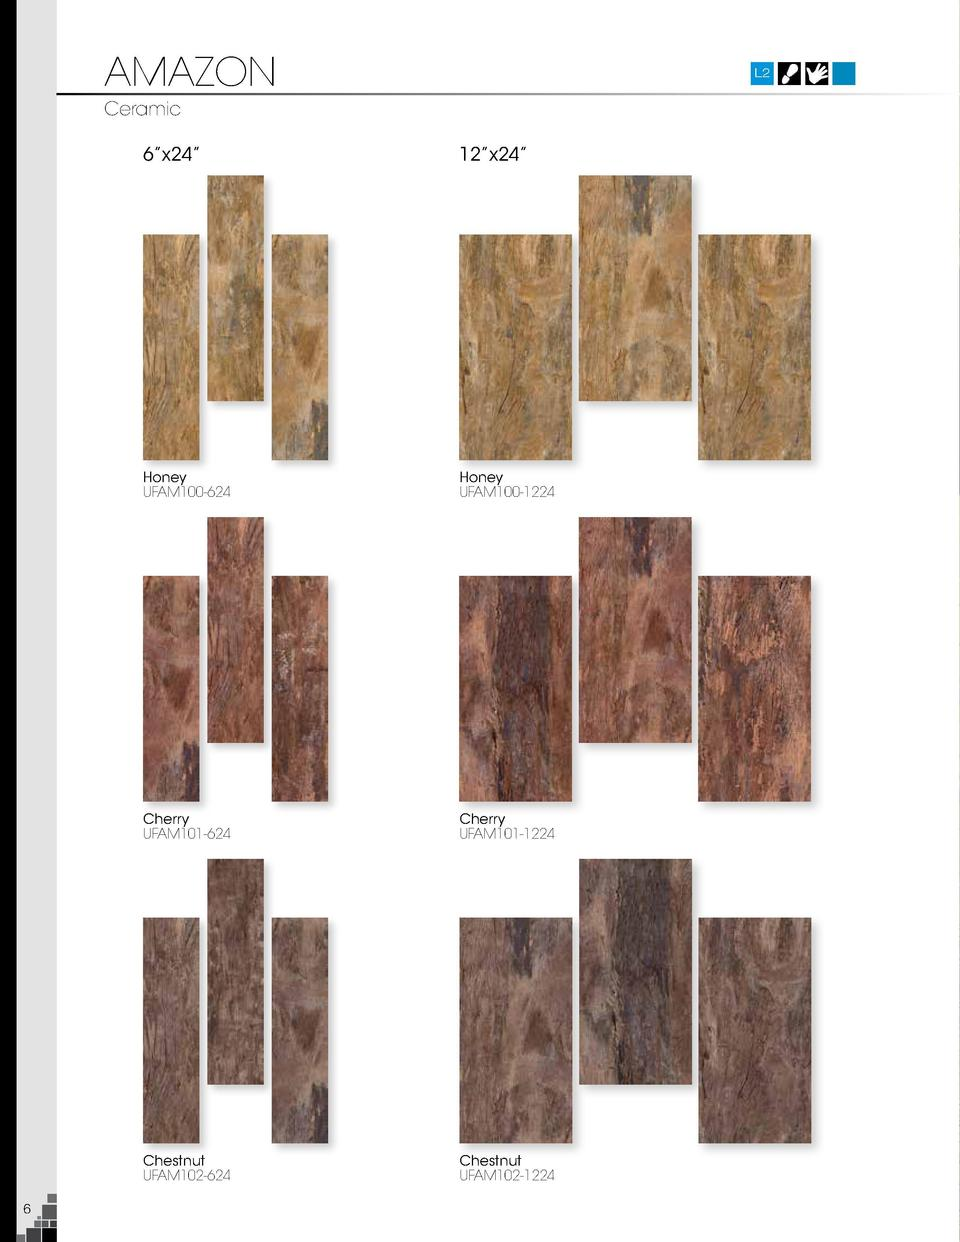 Amazon floor tiles images tile flooring design ideas amazon floor tiles image collections tile flooring design ideas amazon floor tiles image collections tile flooring dailygadgetfo Image collections